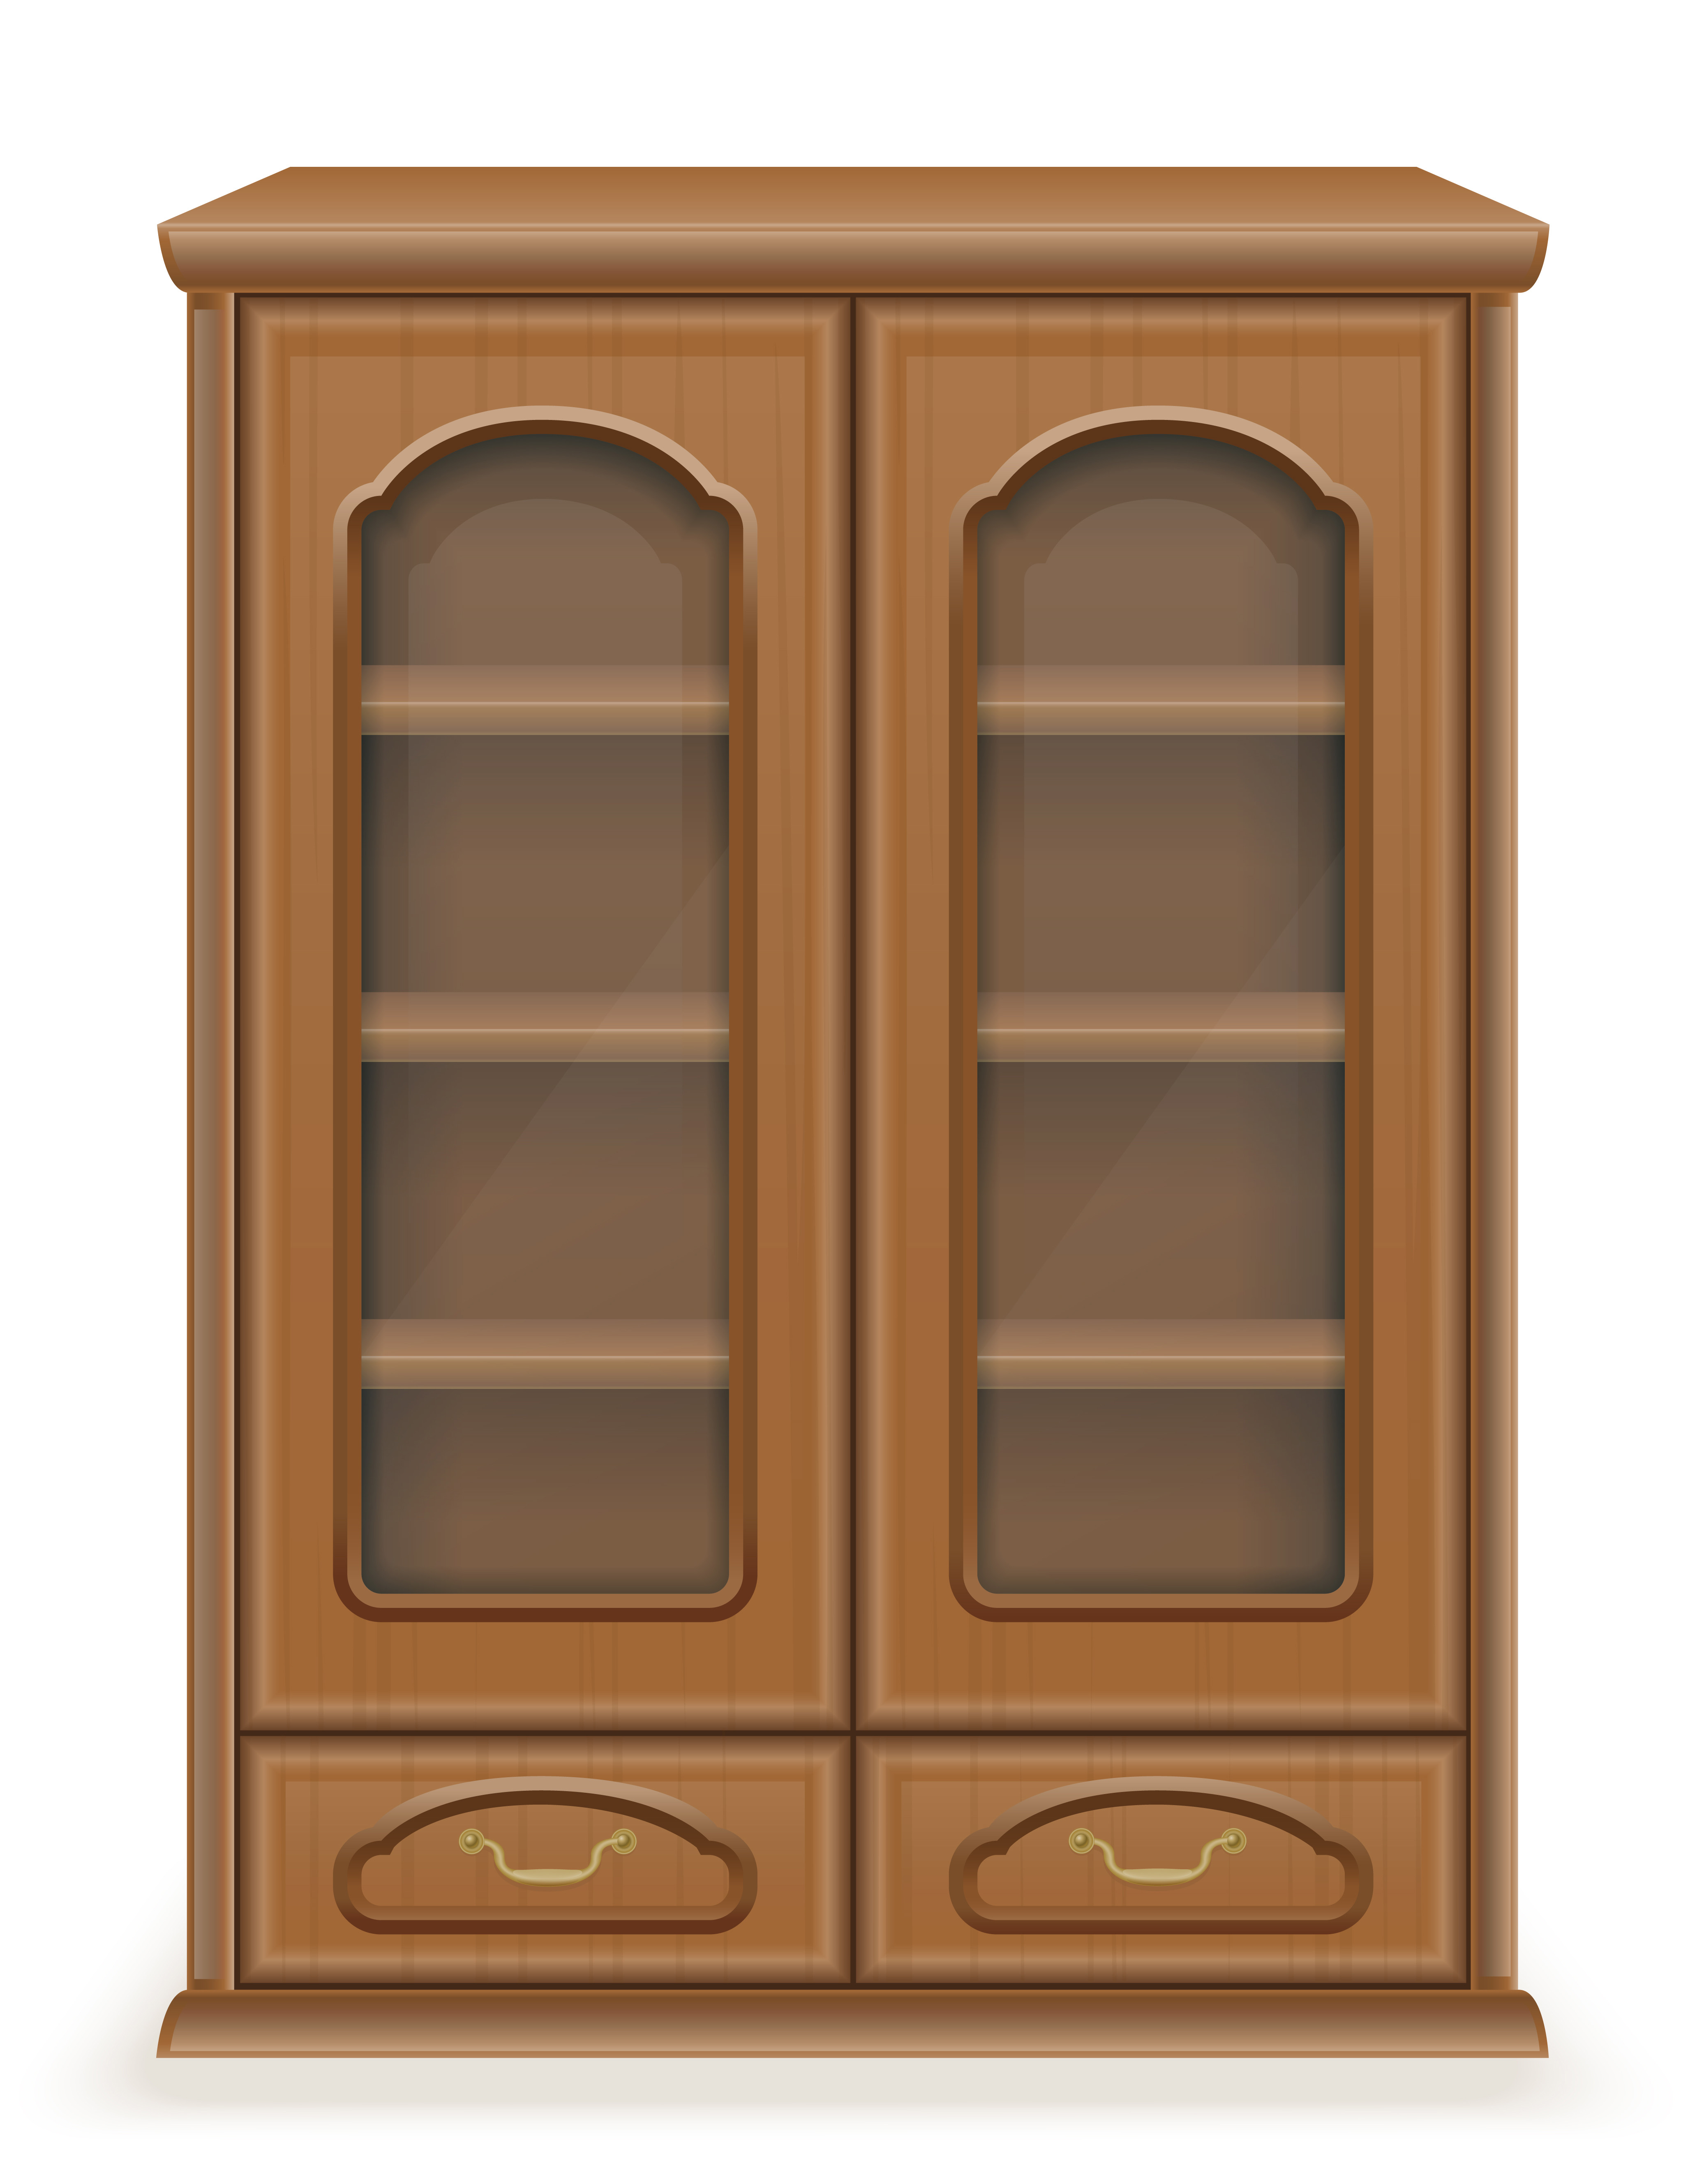 cupboard furniture made of wood vector illustration.